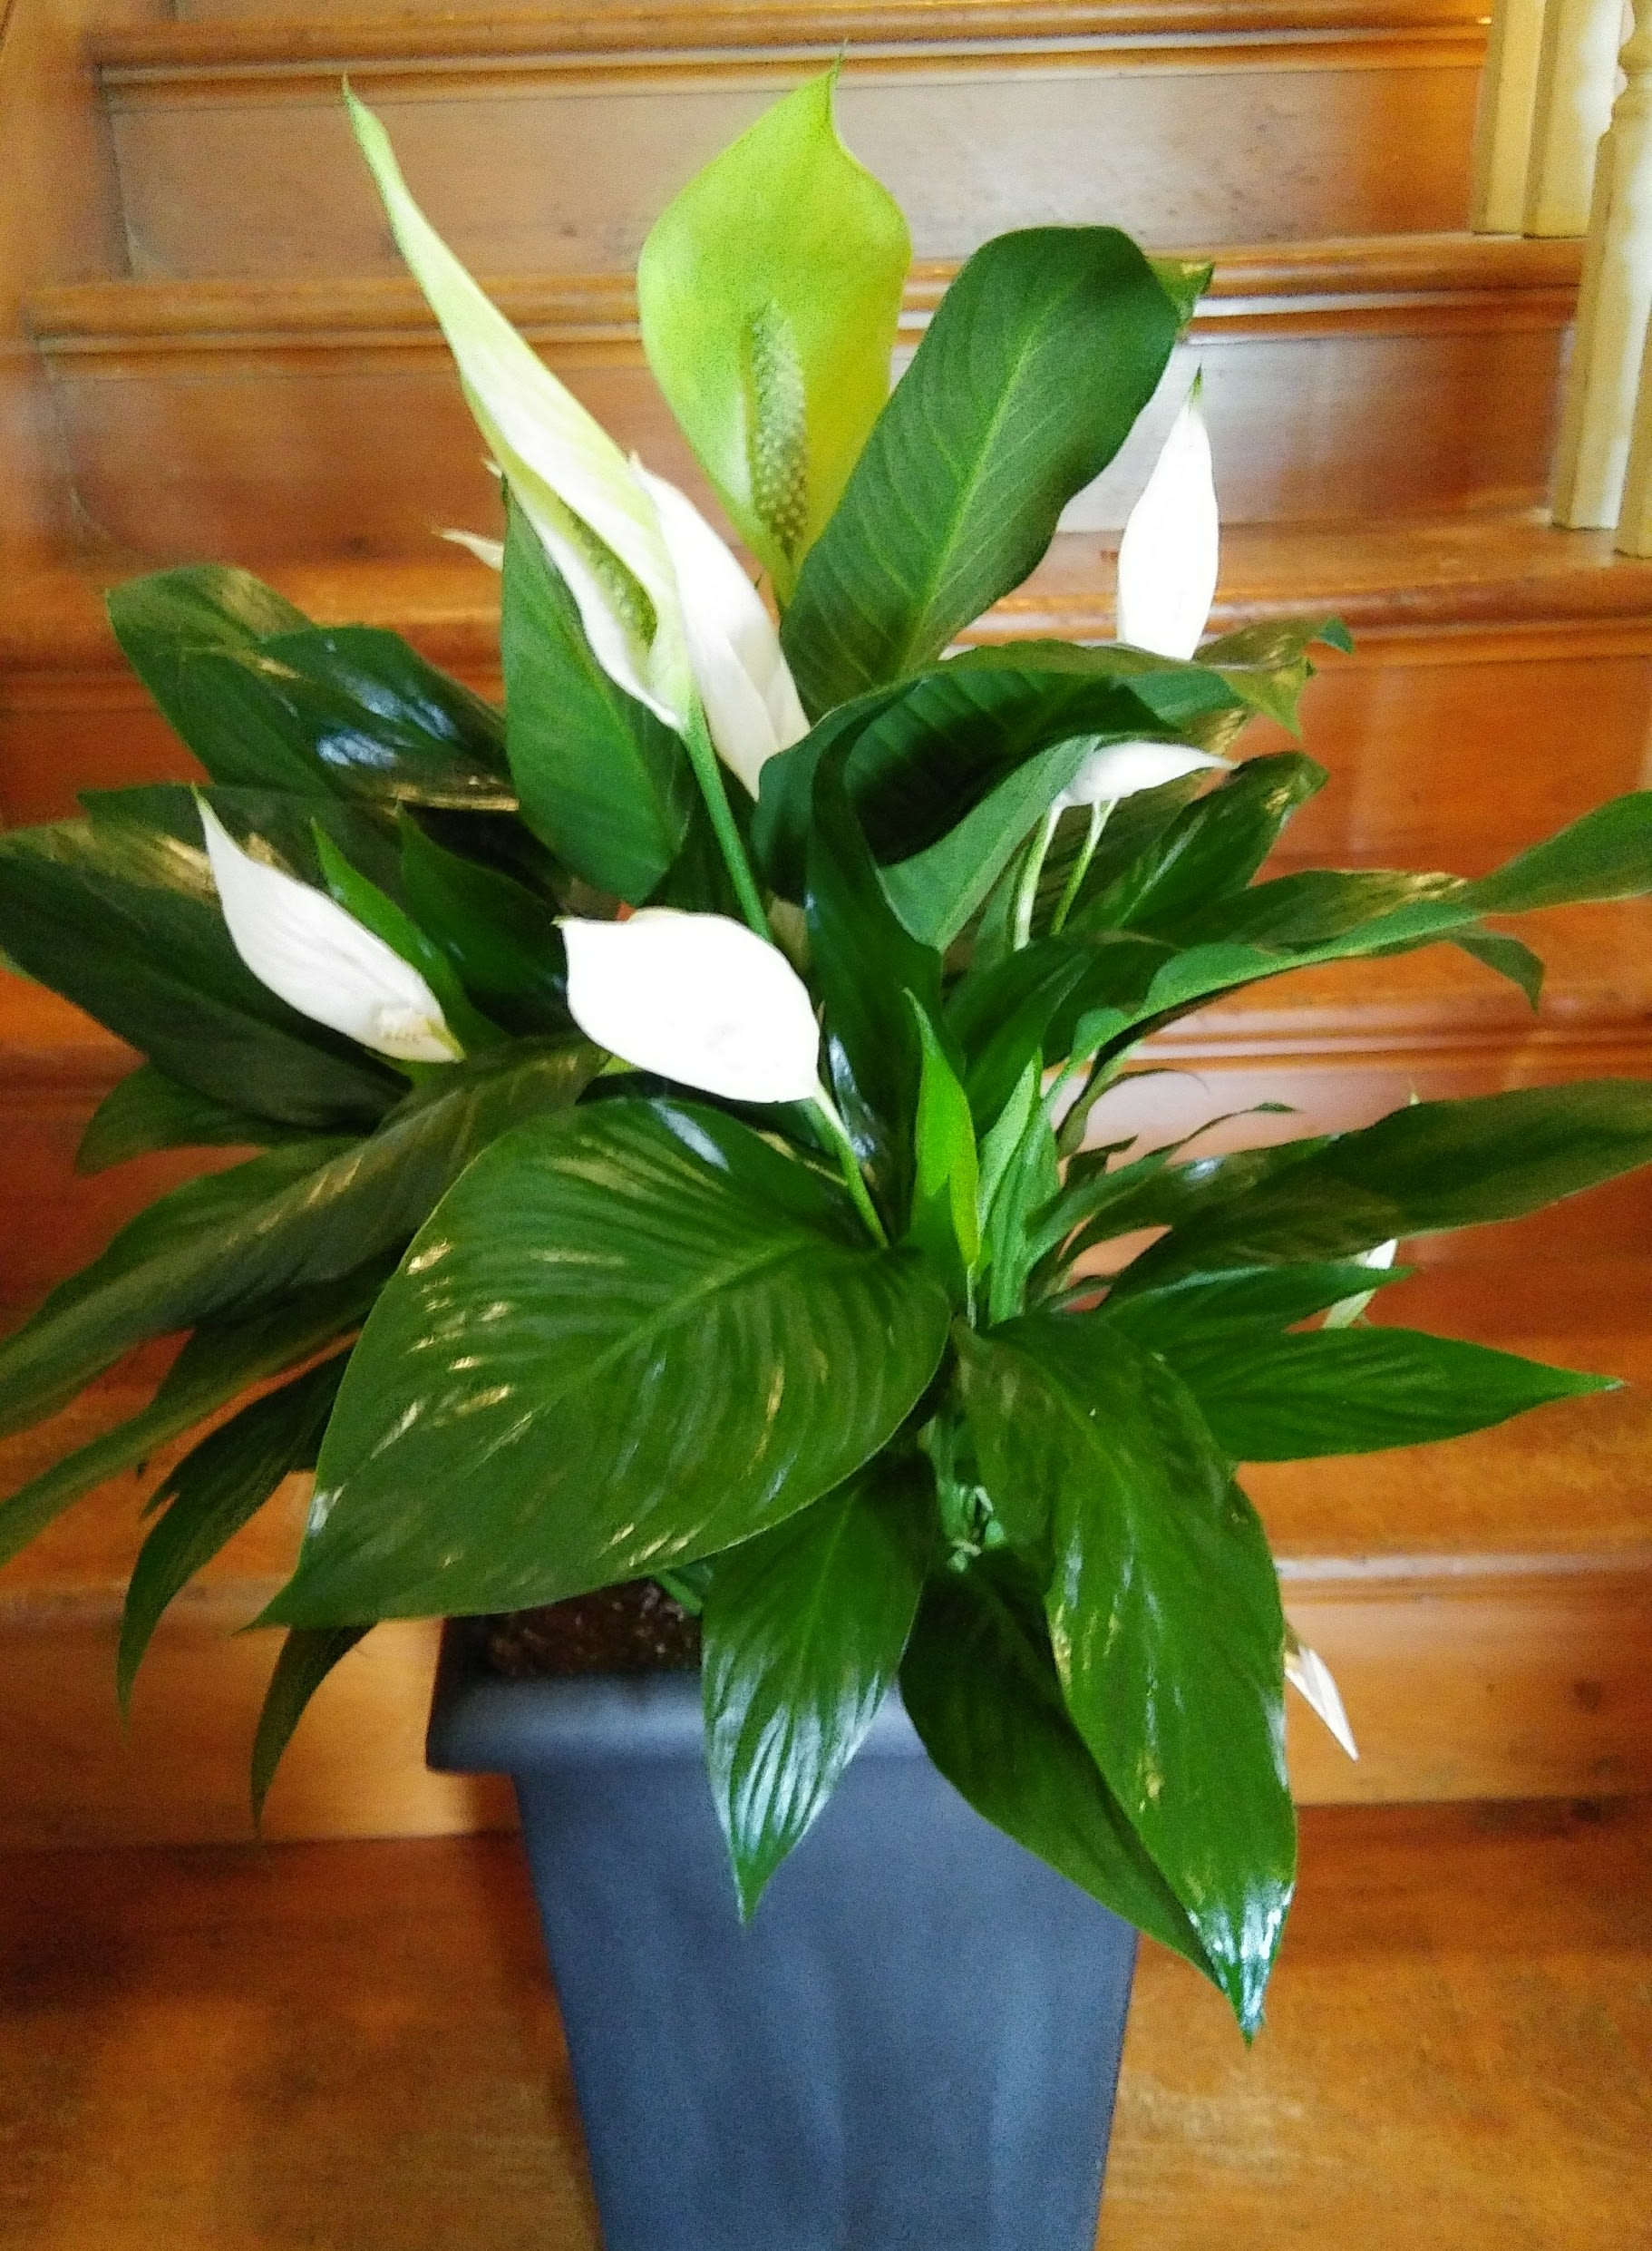 Peace Lily in Fort Madison, IA | The Flower Cottage on corn plant houseplant, bamboo palm houseplant, dragon tree houseplant, kentia palm houseplant, snake plant houseplant, kalanchoe houseplant, begonia houseplant, nephthytis houseplant, rubber plant houseplant, philodendron houseplant, purple wandering jew houseplant, ivy houseplant, cactus houseplant, rubber tree houseplant, schefflera houseplant, dieffenbachia houseplant, boston fern houseplant, peperomia houseplant, dracaena houseplant,